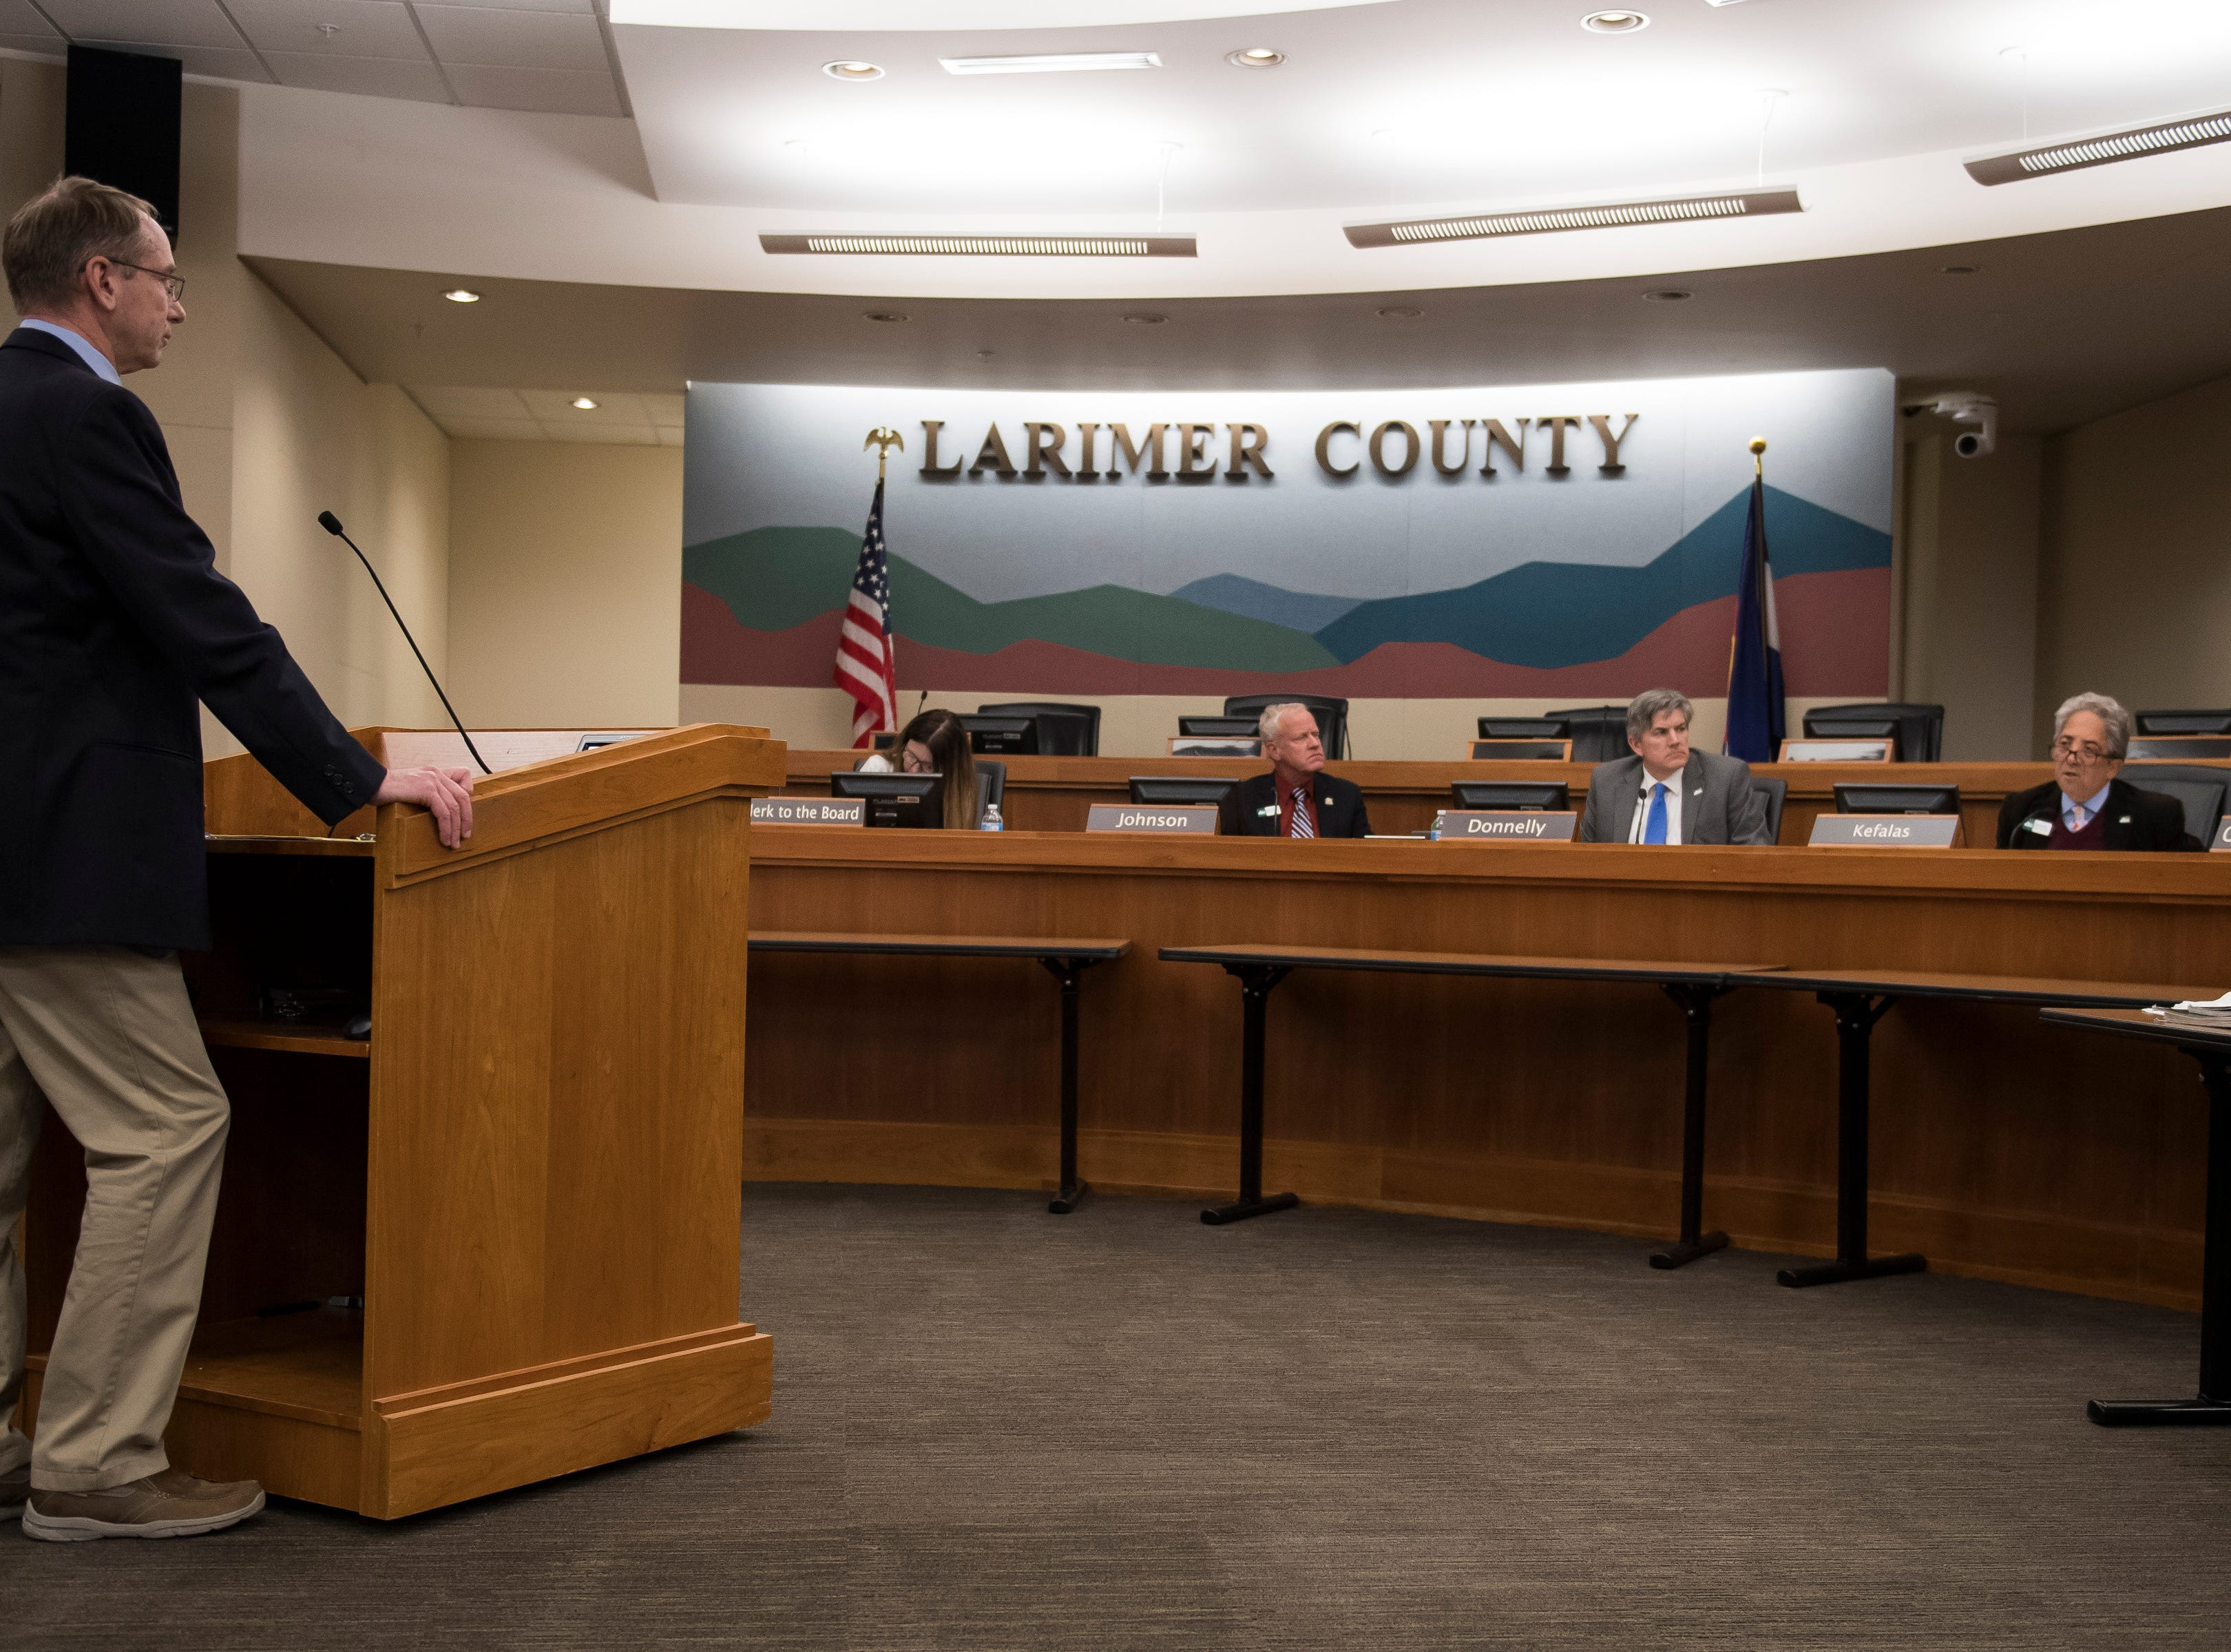 Director of the Thornton Water Project Mark Koleber, left, is asked questions by Larimer County District one commissioner John Kefalas before the county commissioners ultimately voted against the current proposal for construction of the Thornton pipeline on Monday, Feb. 11, 2019, in Fort Collins, Colo.